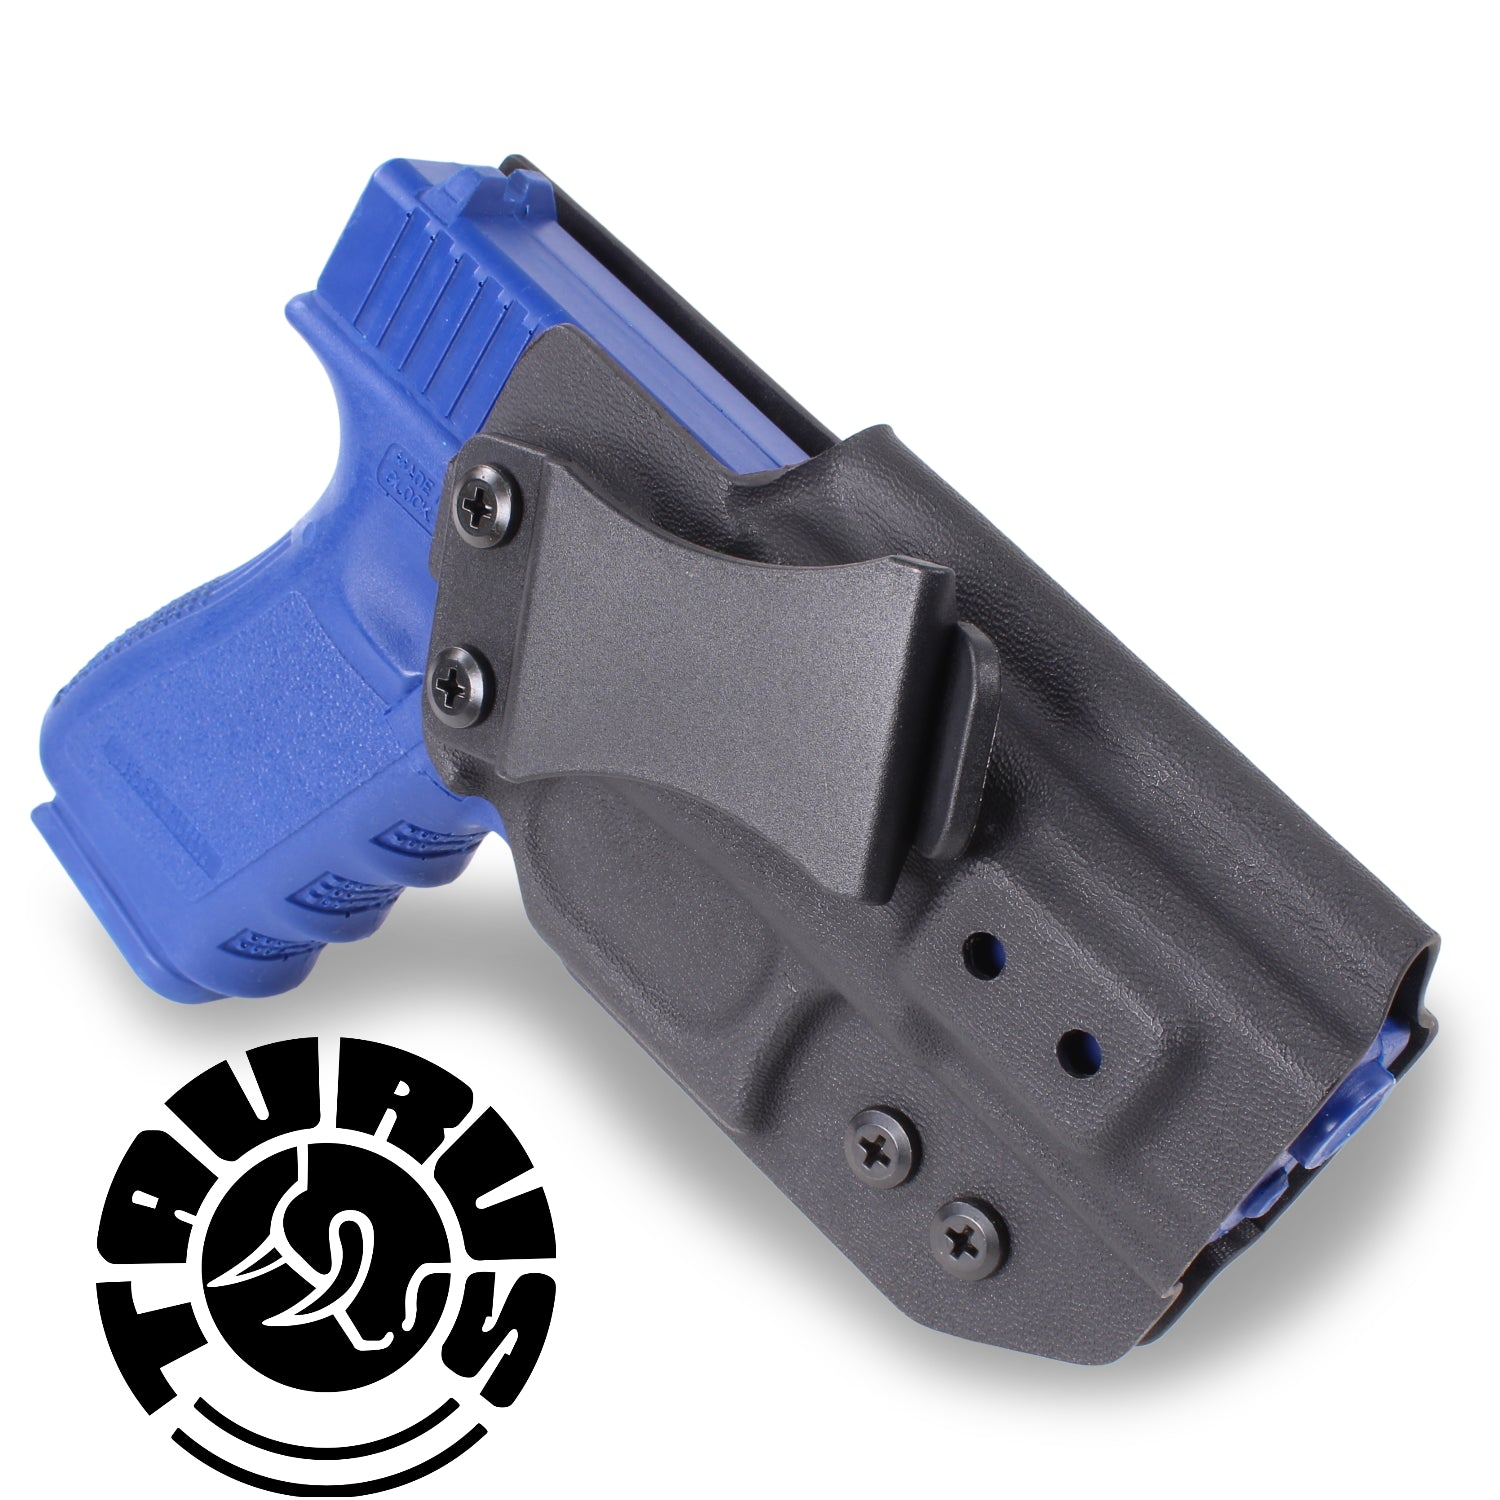 TAURUS - IWB KYDEX Gun Holster - Concealed Carry Tuckable Multiple Adjustable Belt Clips - 100% US Made - Inside Waistband